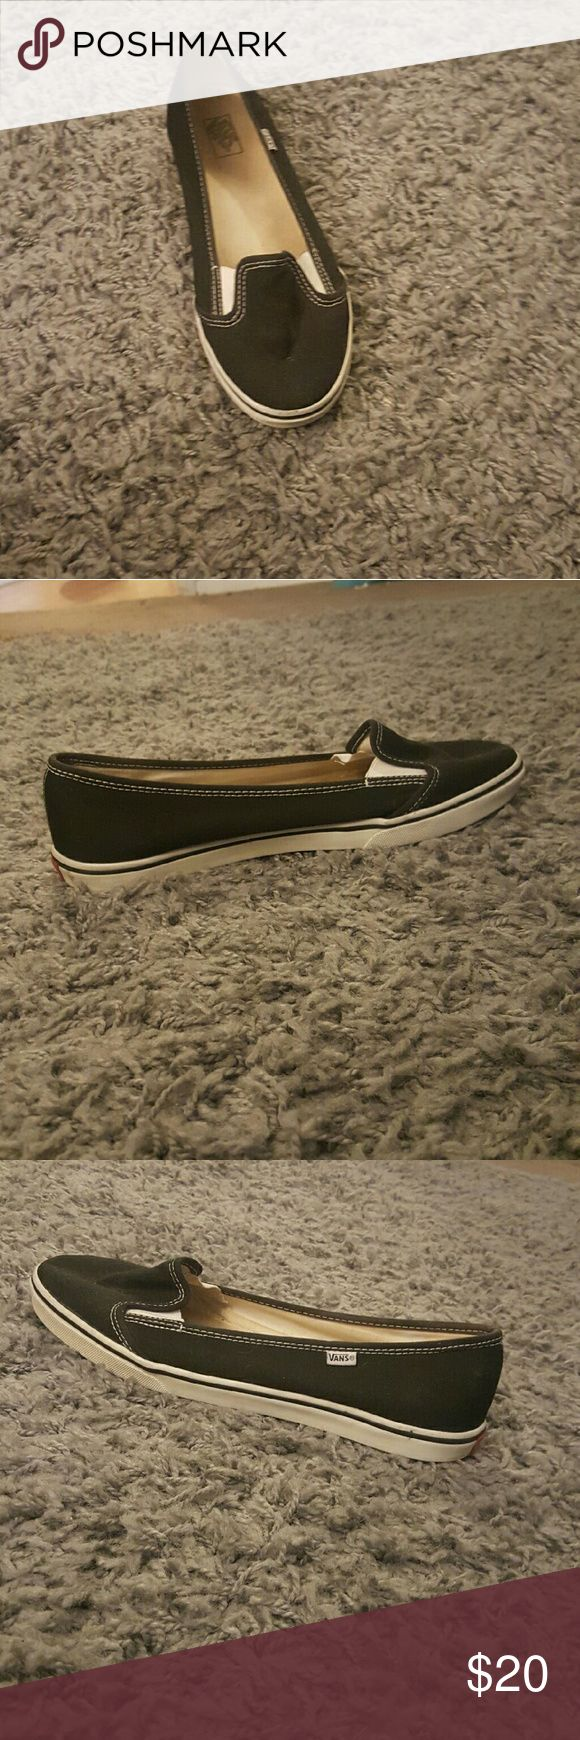 Vans ballerina flats size 9 Vans flats white and black used but great condition . Super hard to find this color anywhere. Usually they only have the all black ones now. Size 9 in women. Vans Shoes